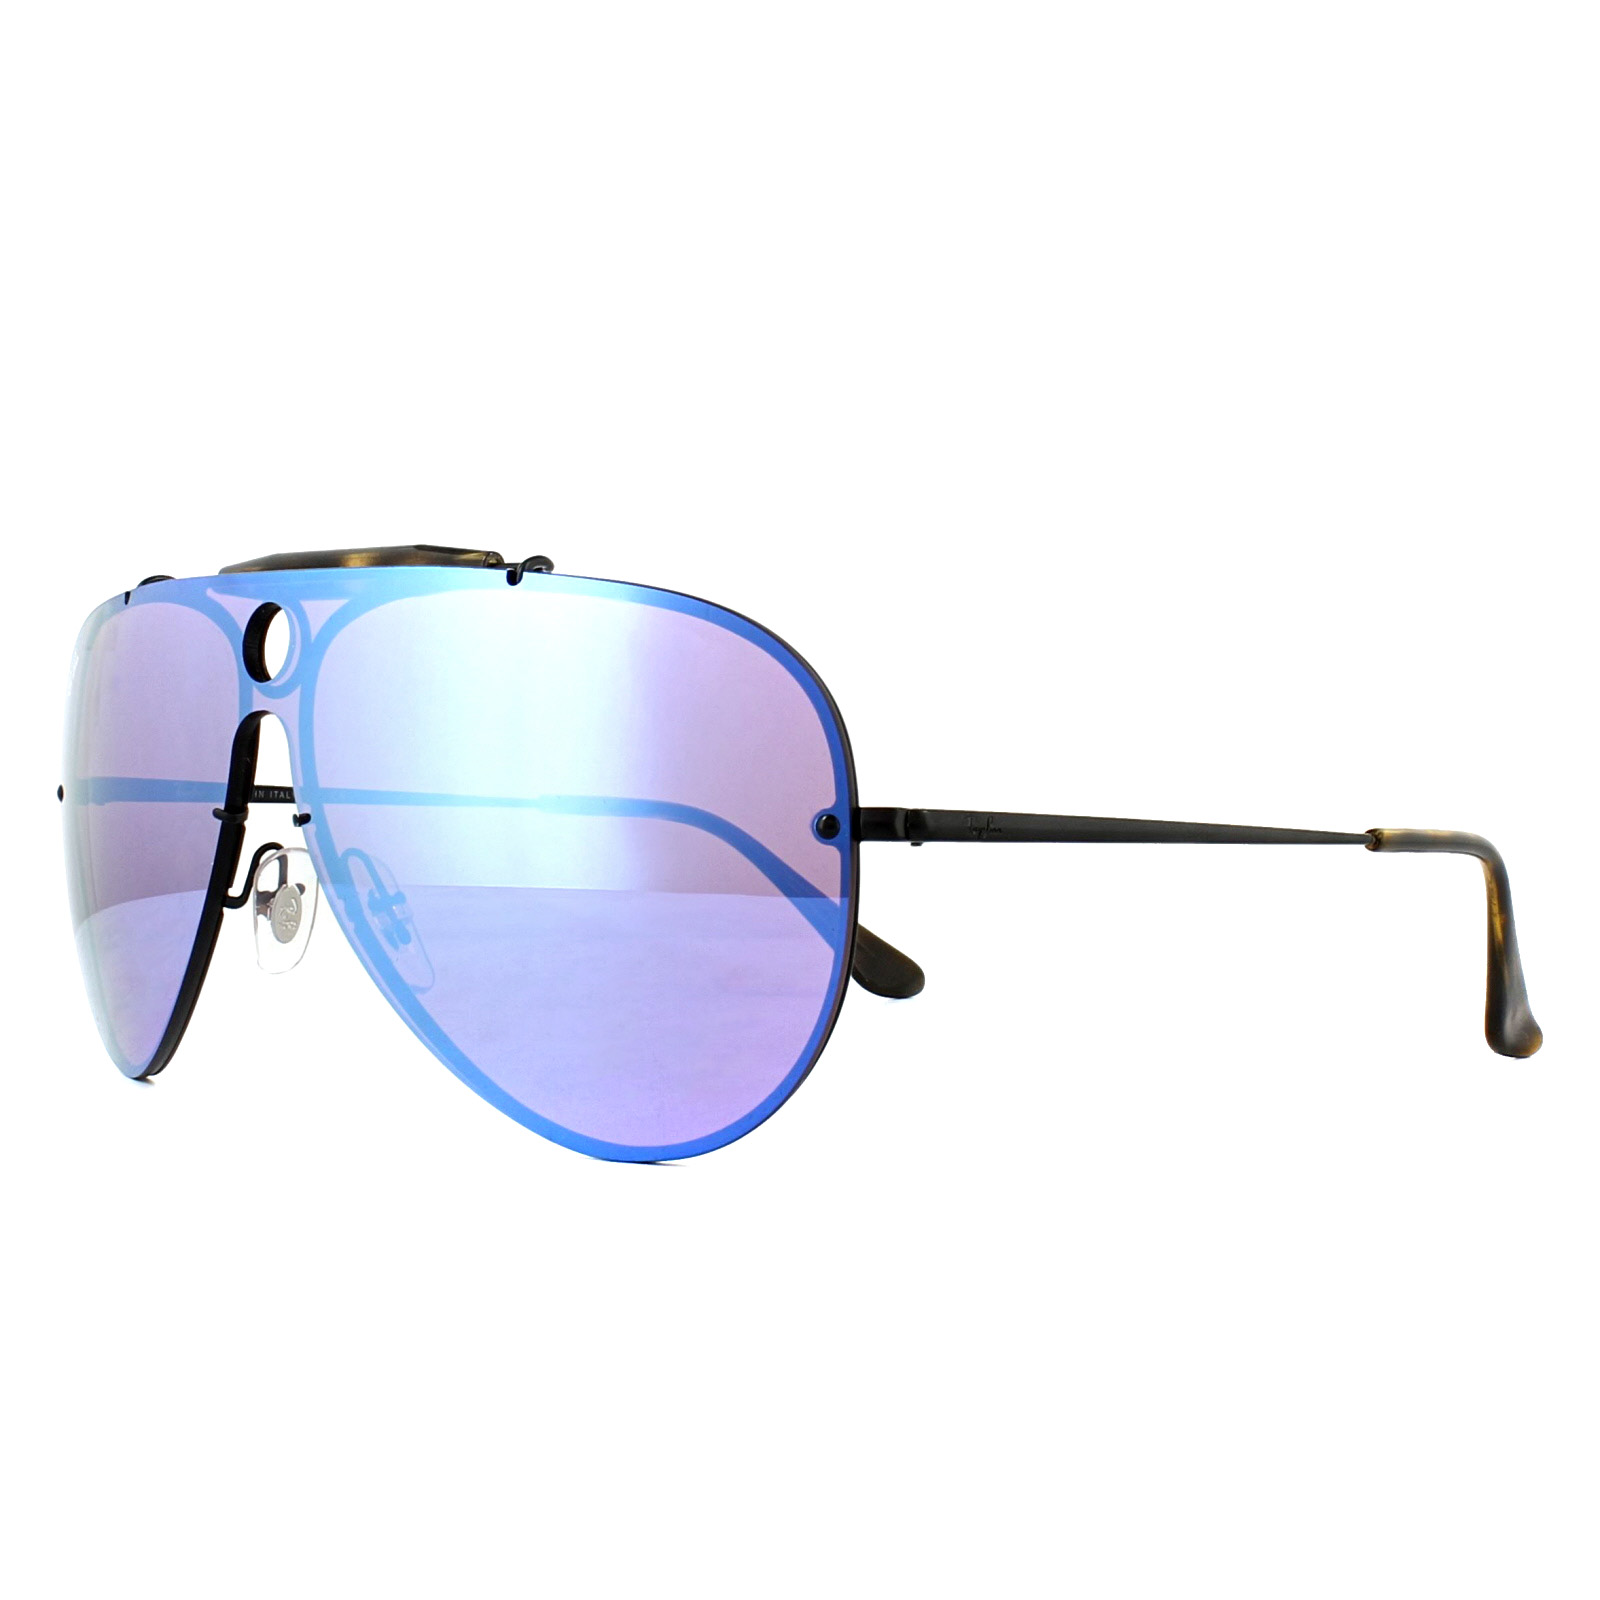 ba82a13f45 Sentinel Ray-Ban Sunglasses Blaze Shooter 3581N 153/7V Black Violet Blue  Mirror